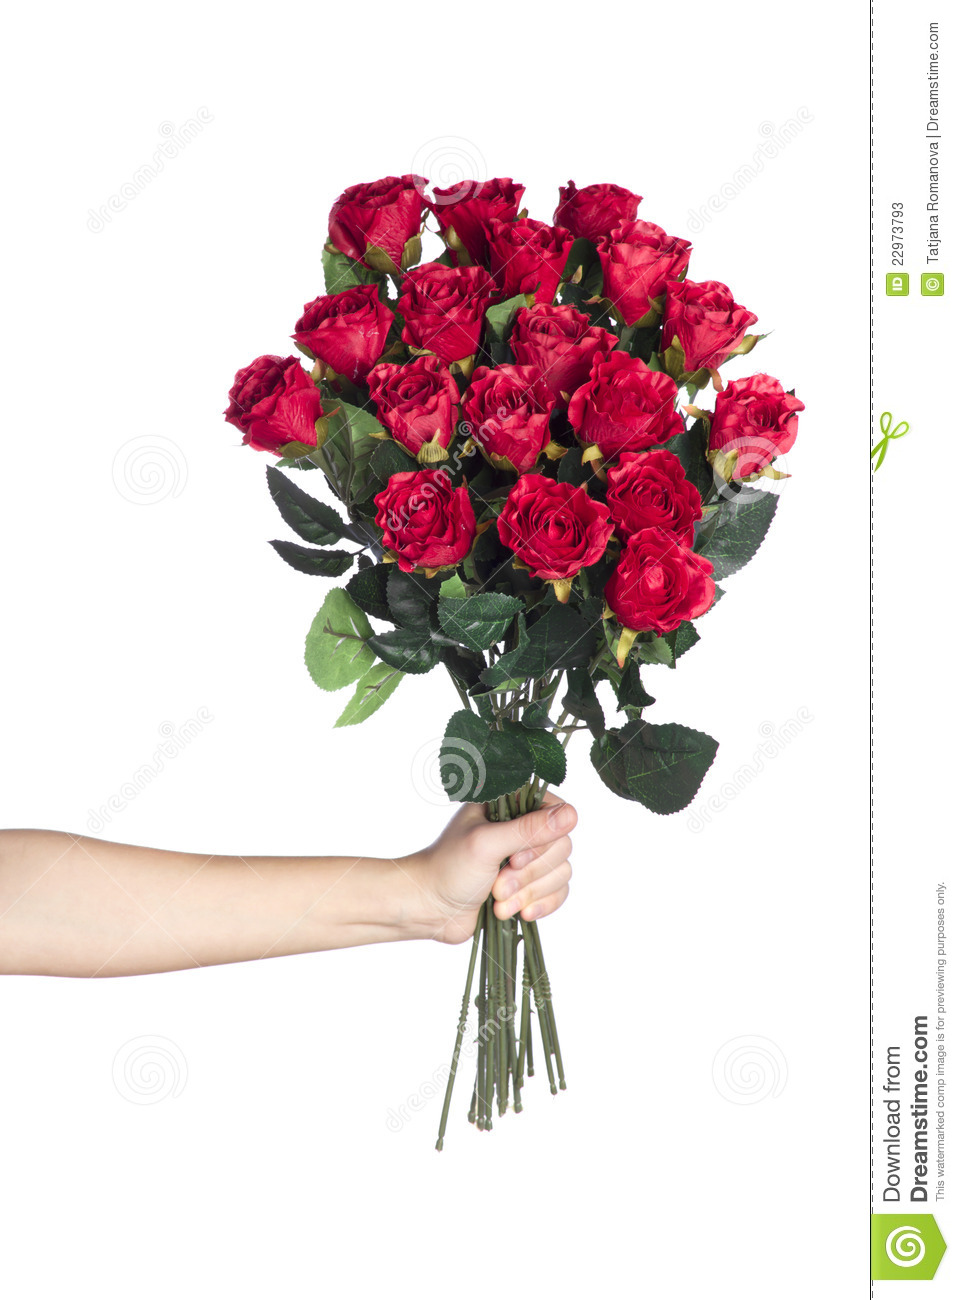 Bouquet de fixation de main des roses rouges